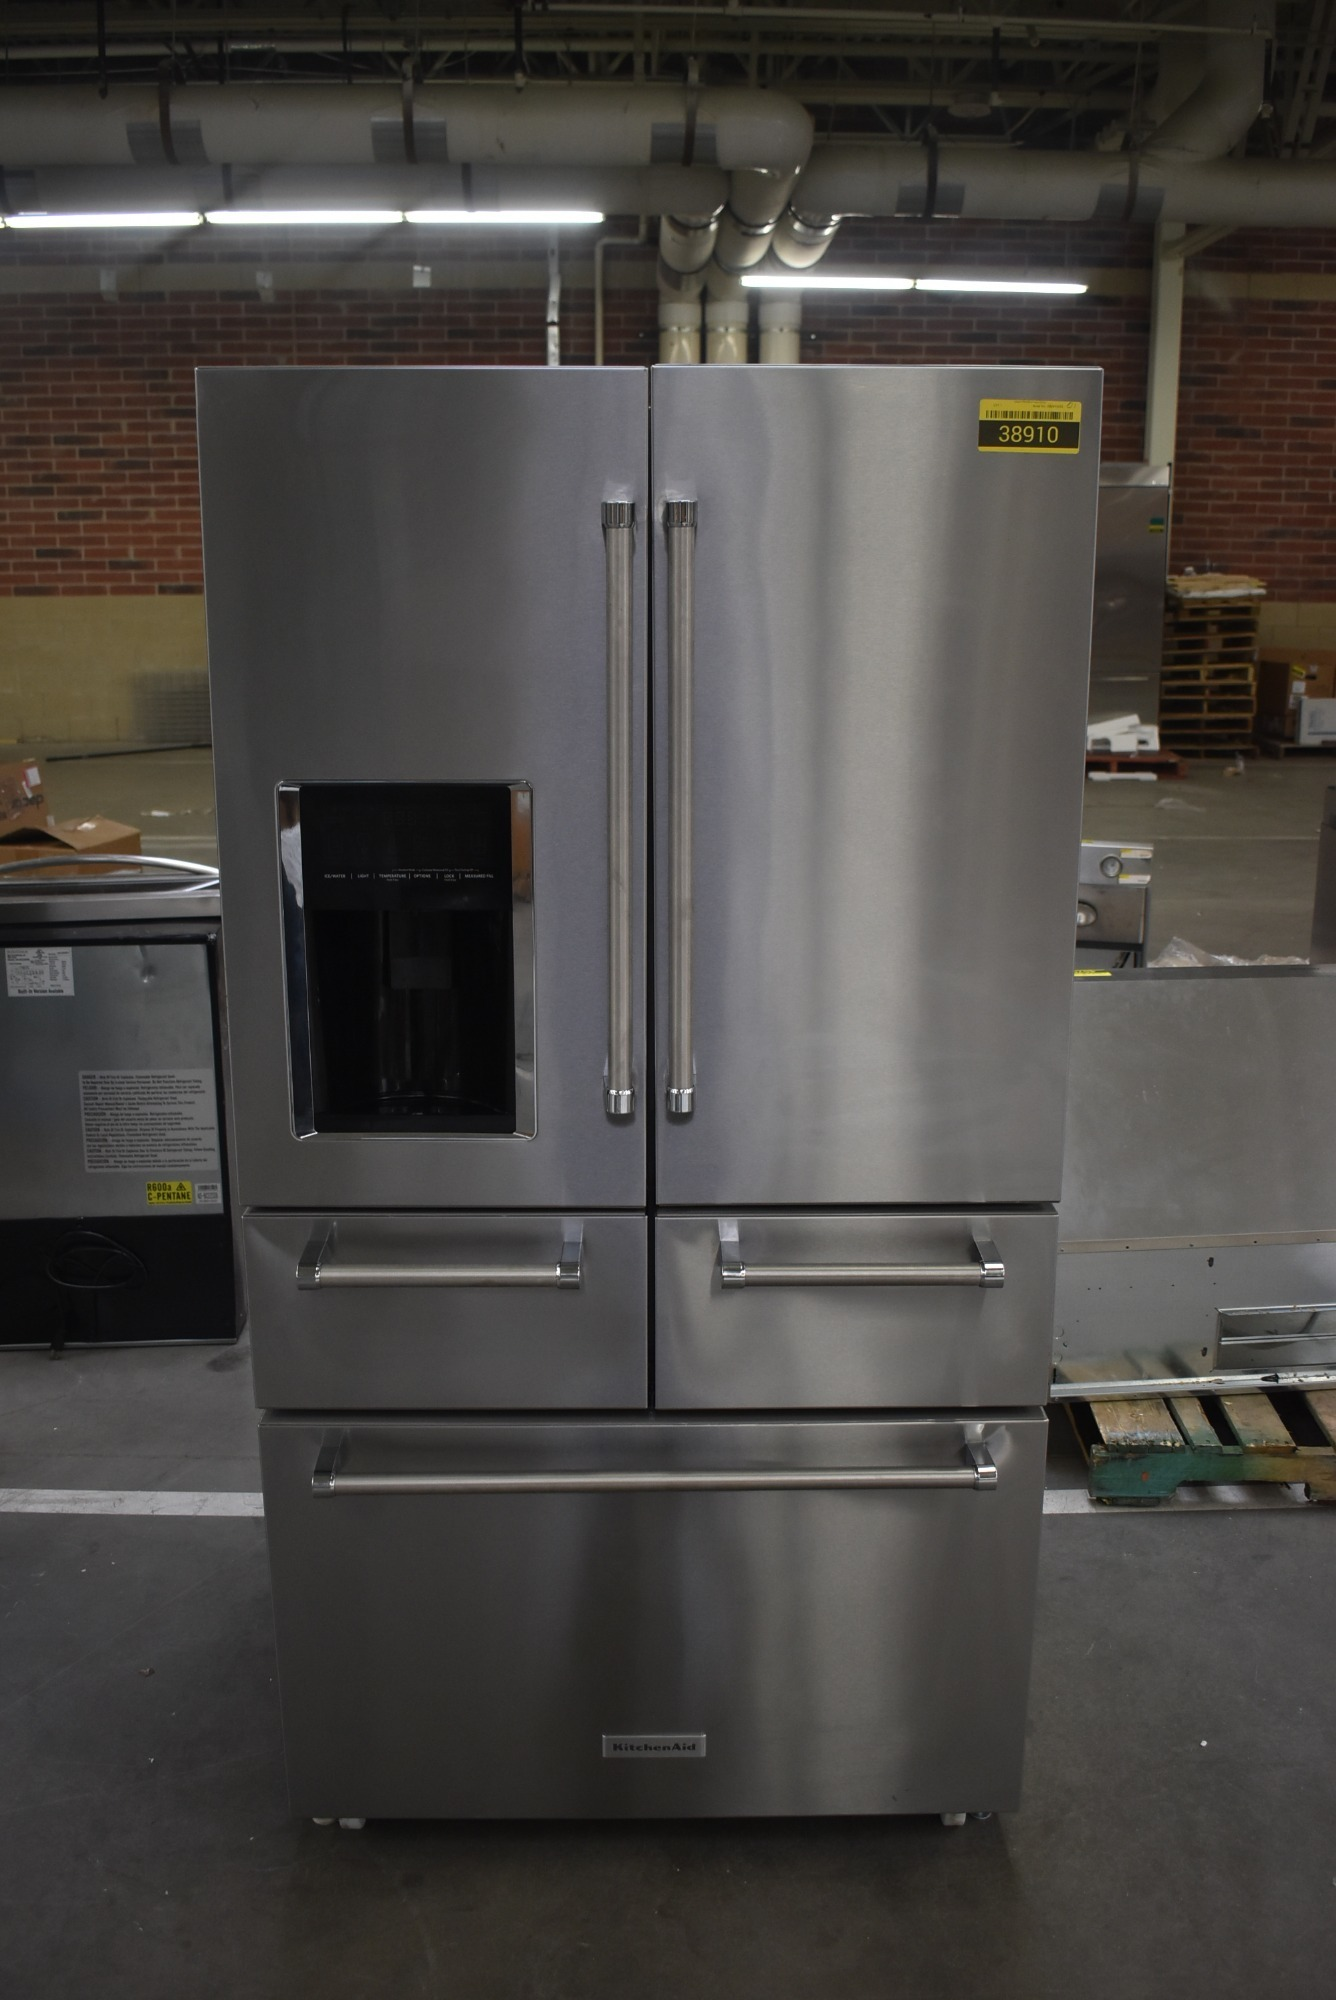 KitchenAid KRMF706ESS 36